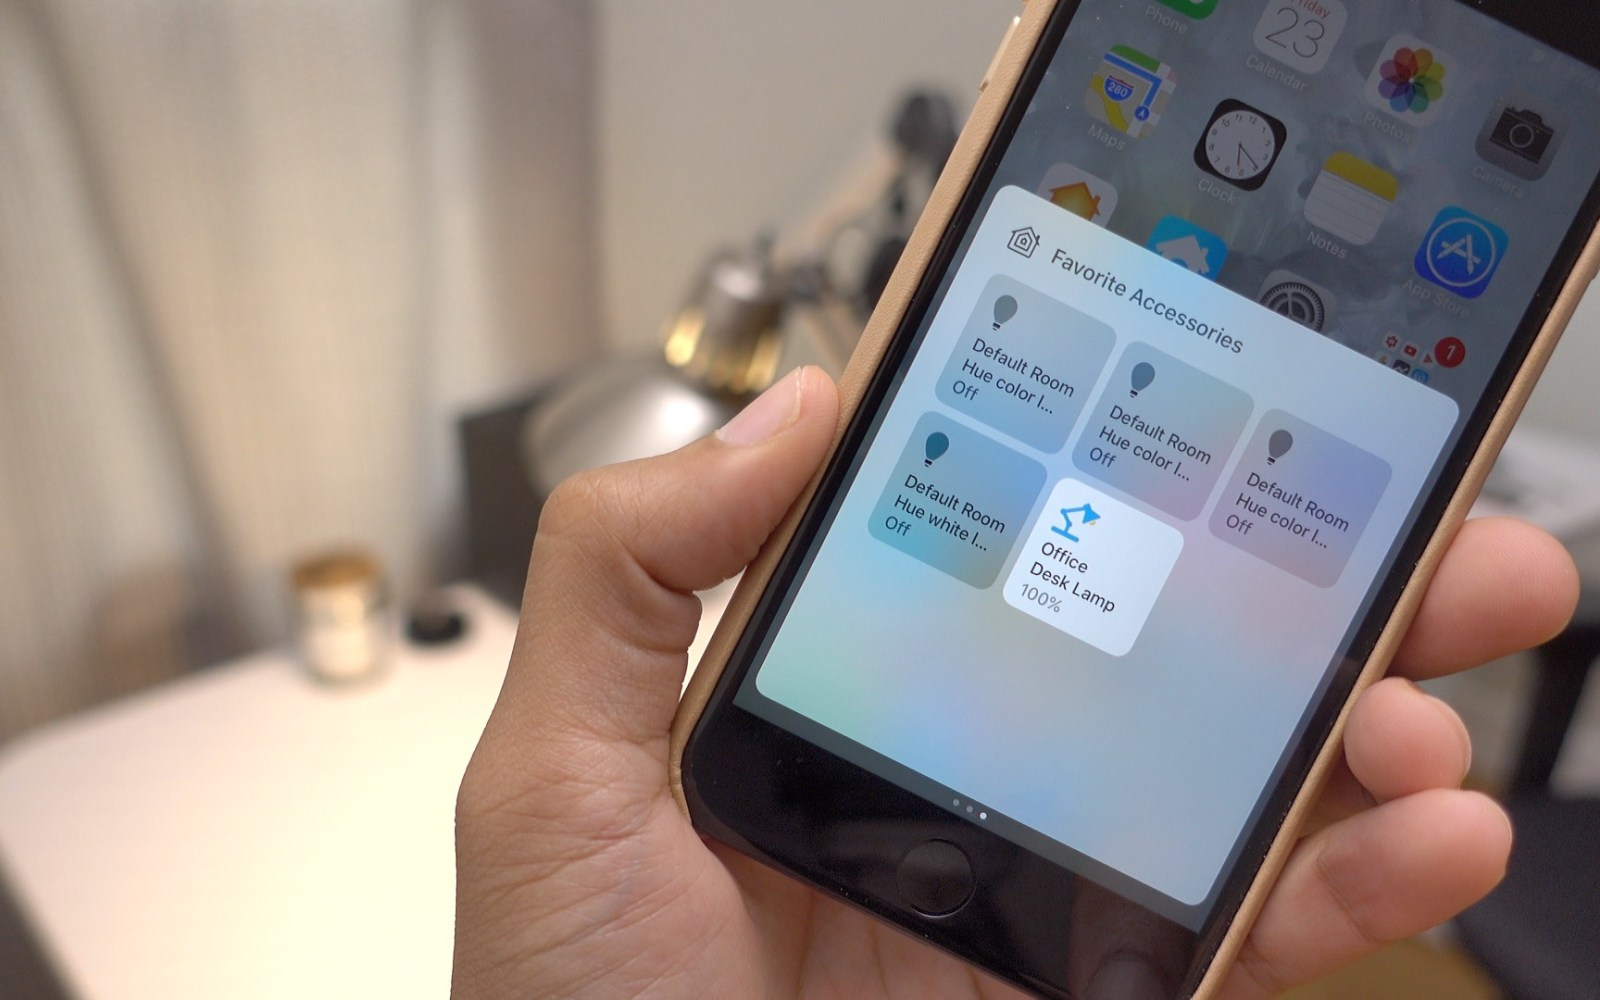 iOS 10: How to use the new Home app to control HomeKit devices [Video]